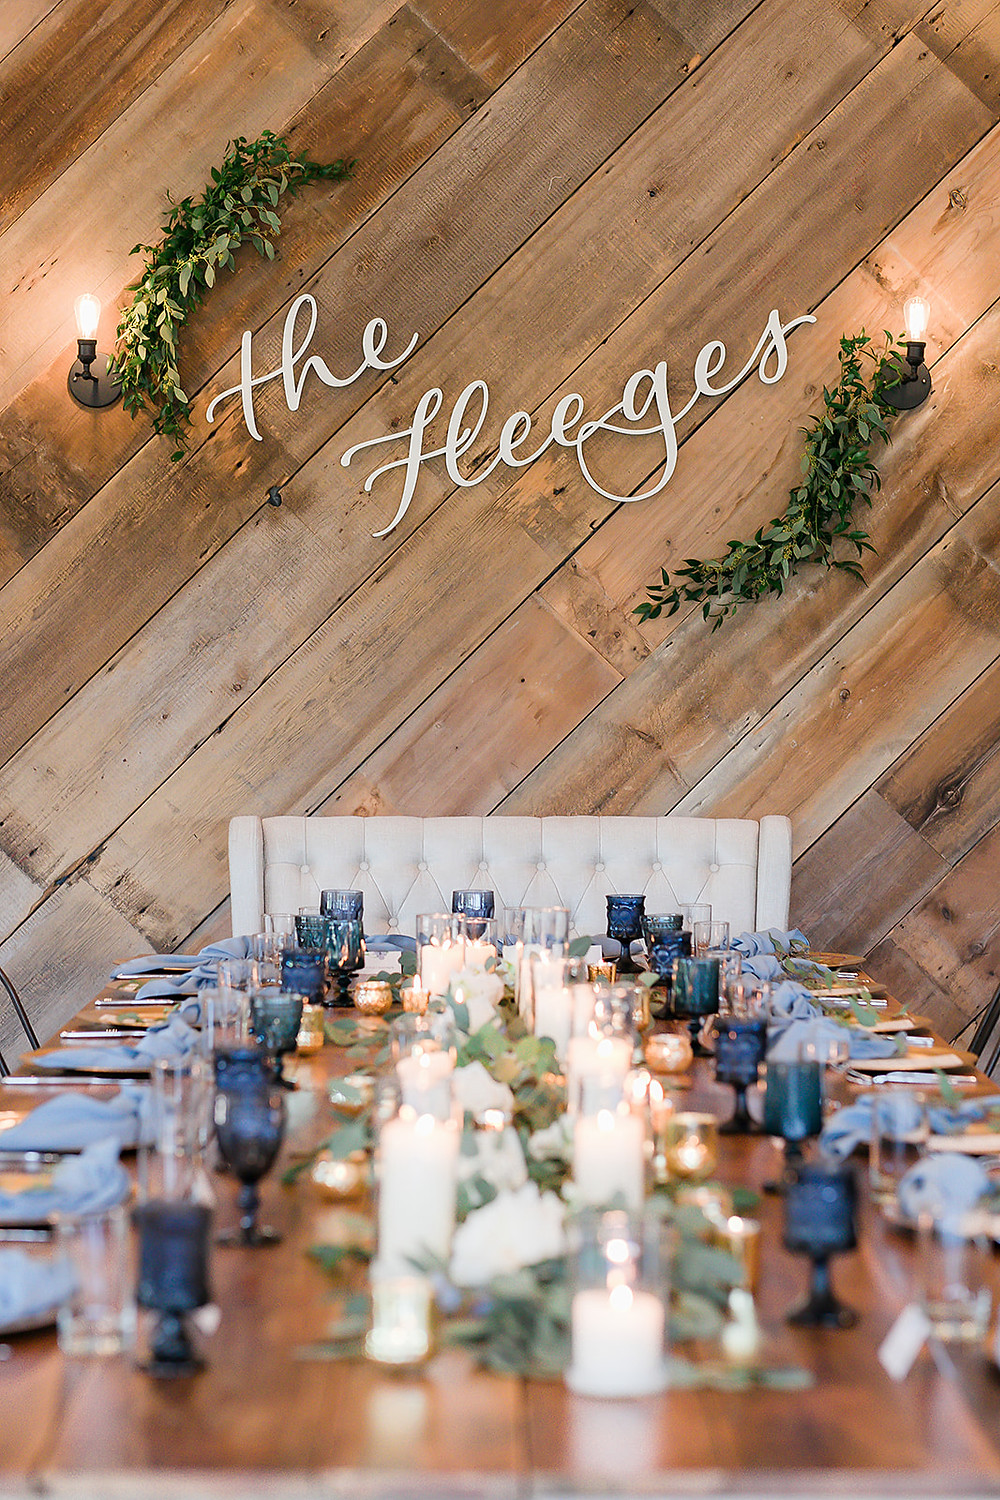 Head table with eucalyptus greenery runner garland, roses, candles, and blue goblets